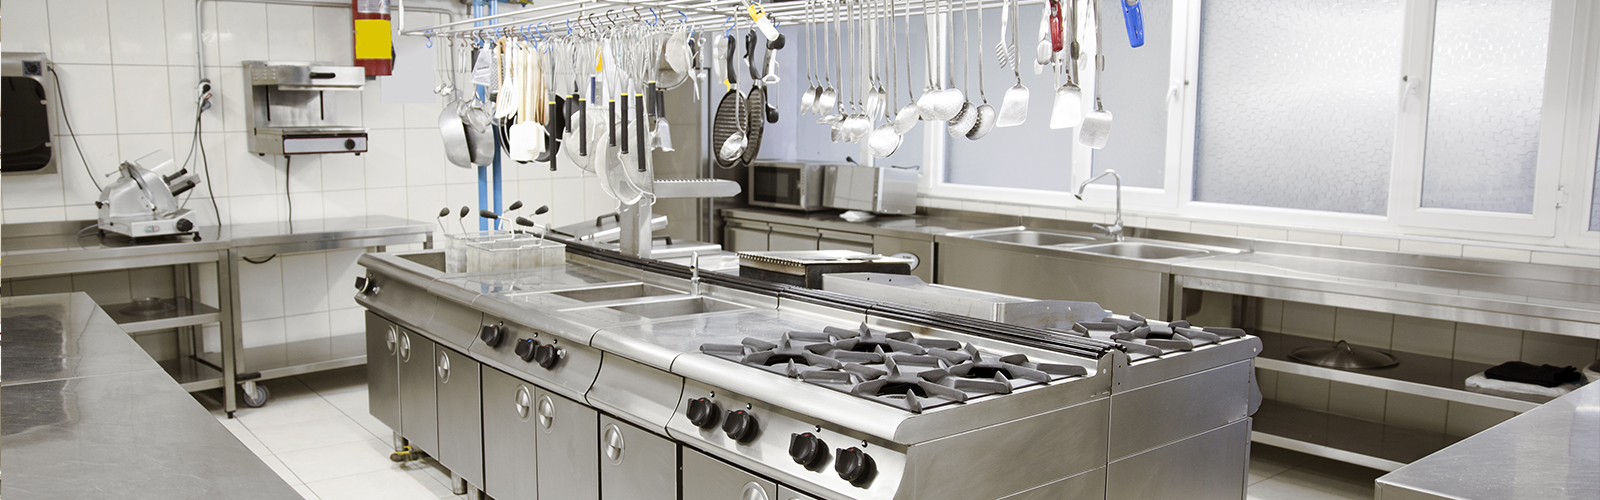 CleanCheck® Cozinha Industrial